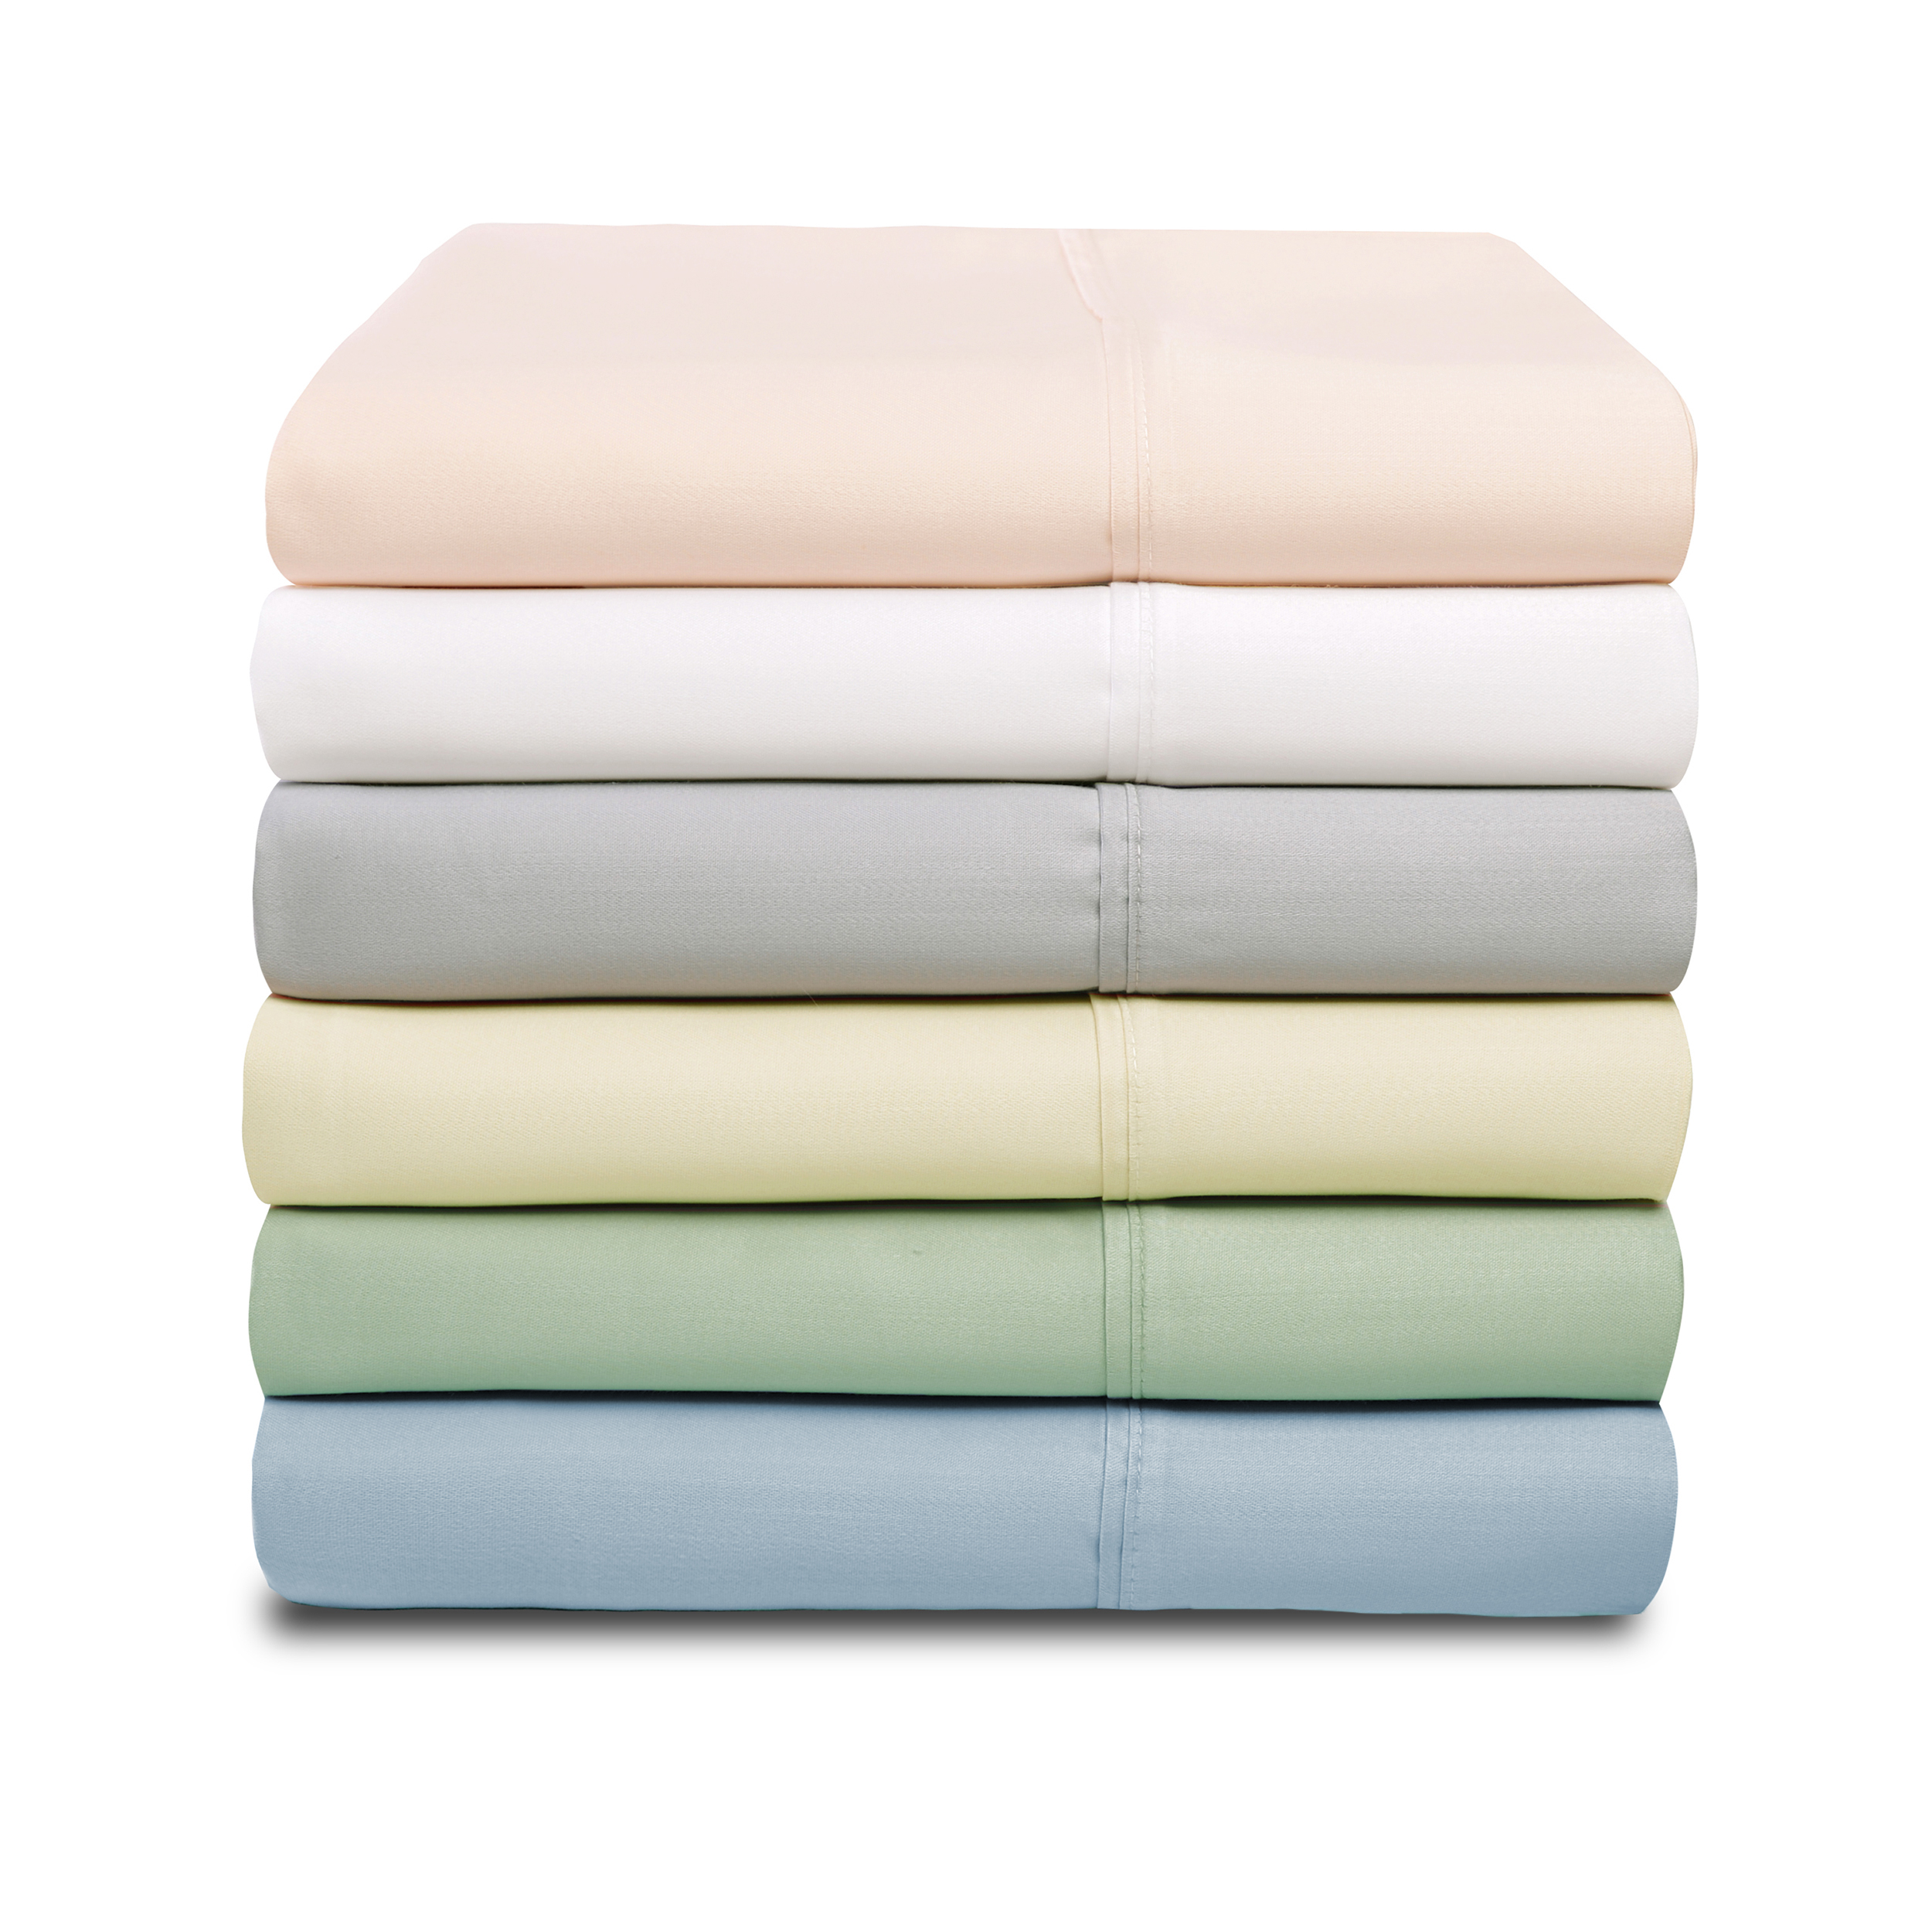 600-Thread-Count-Tencel-Polyester-Ultra-Soft-Bed-Sheet-Set-6-Colors thumbnail 3